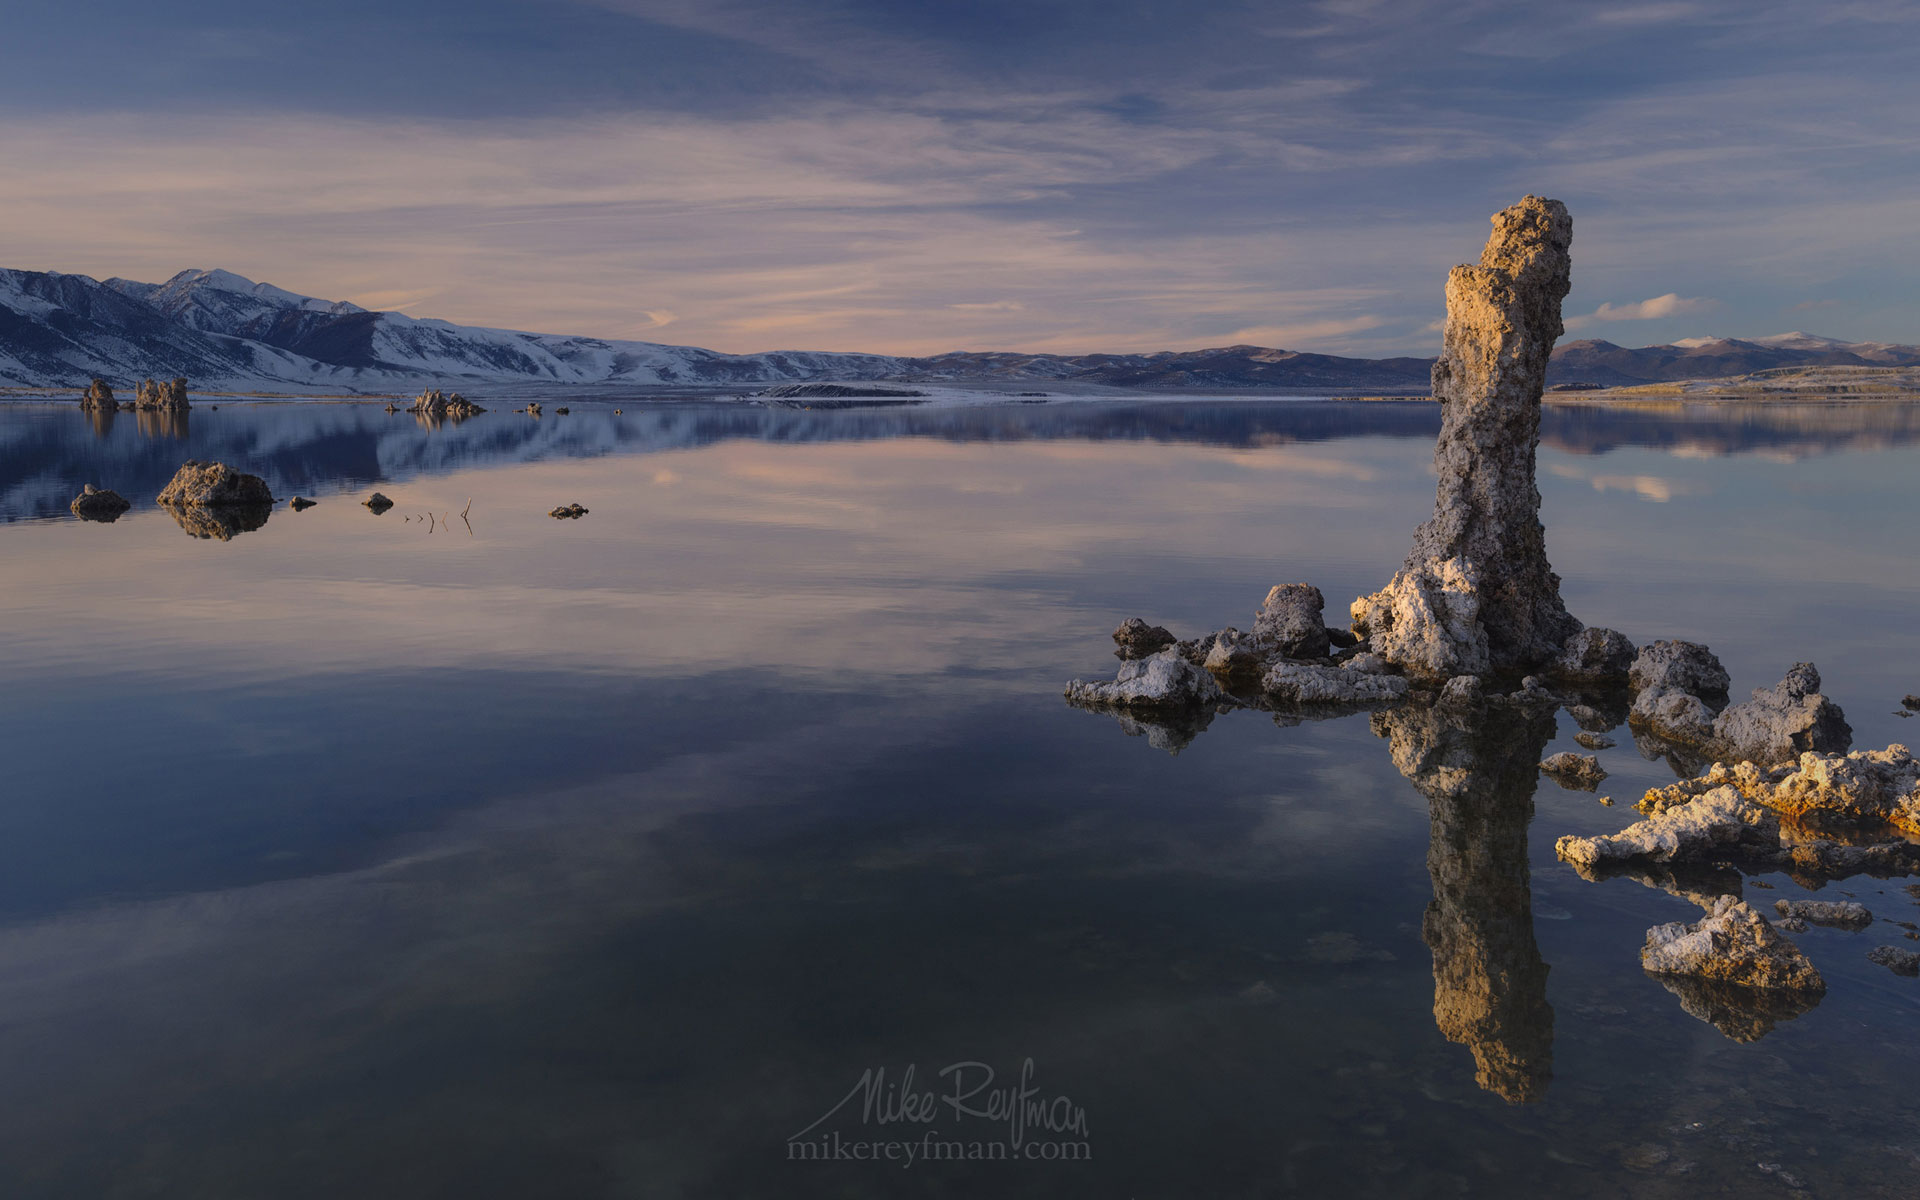 Mono Lake, Tufa State Natural Reserve, Eastern Sierra, California, USA ML1-MRN3X0645 - Mono Lake Tufa State Natural Reserve, Eastern Sierra, California - Mike Reyfman Photography